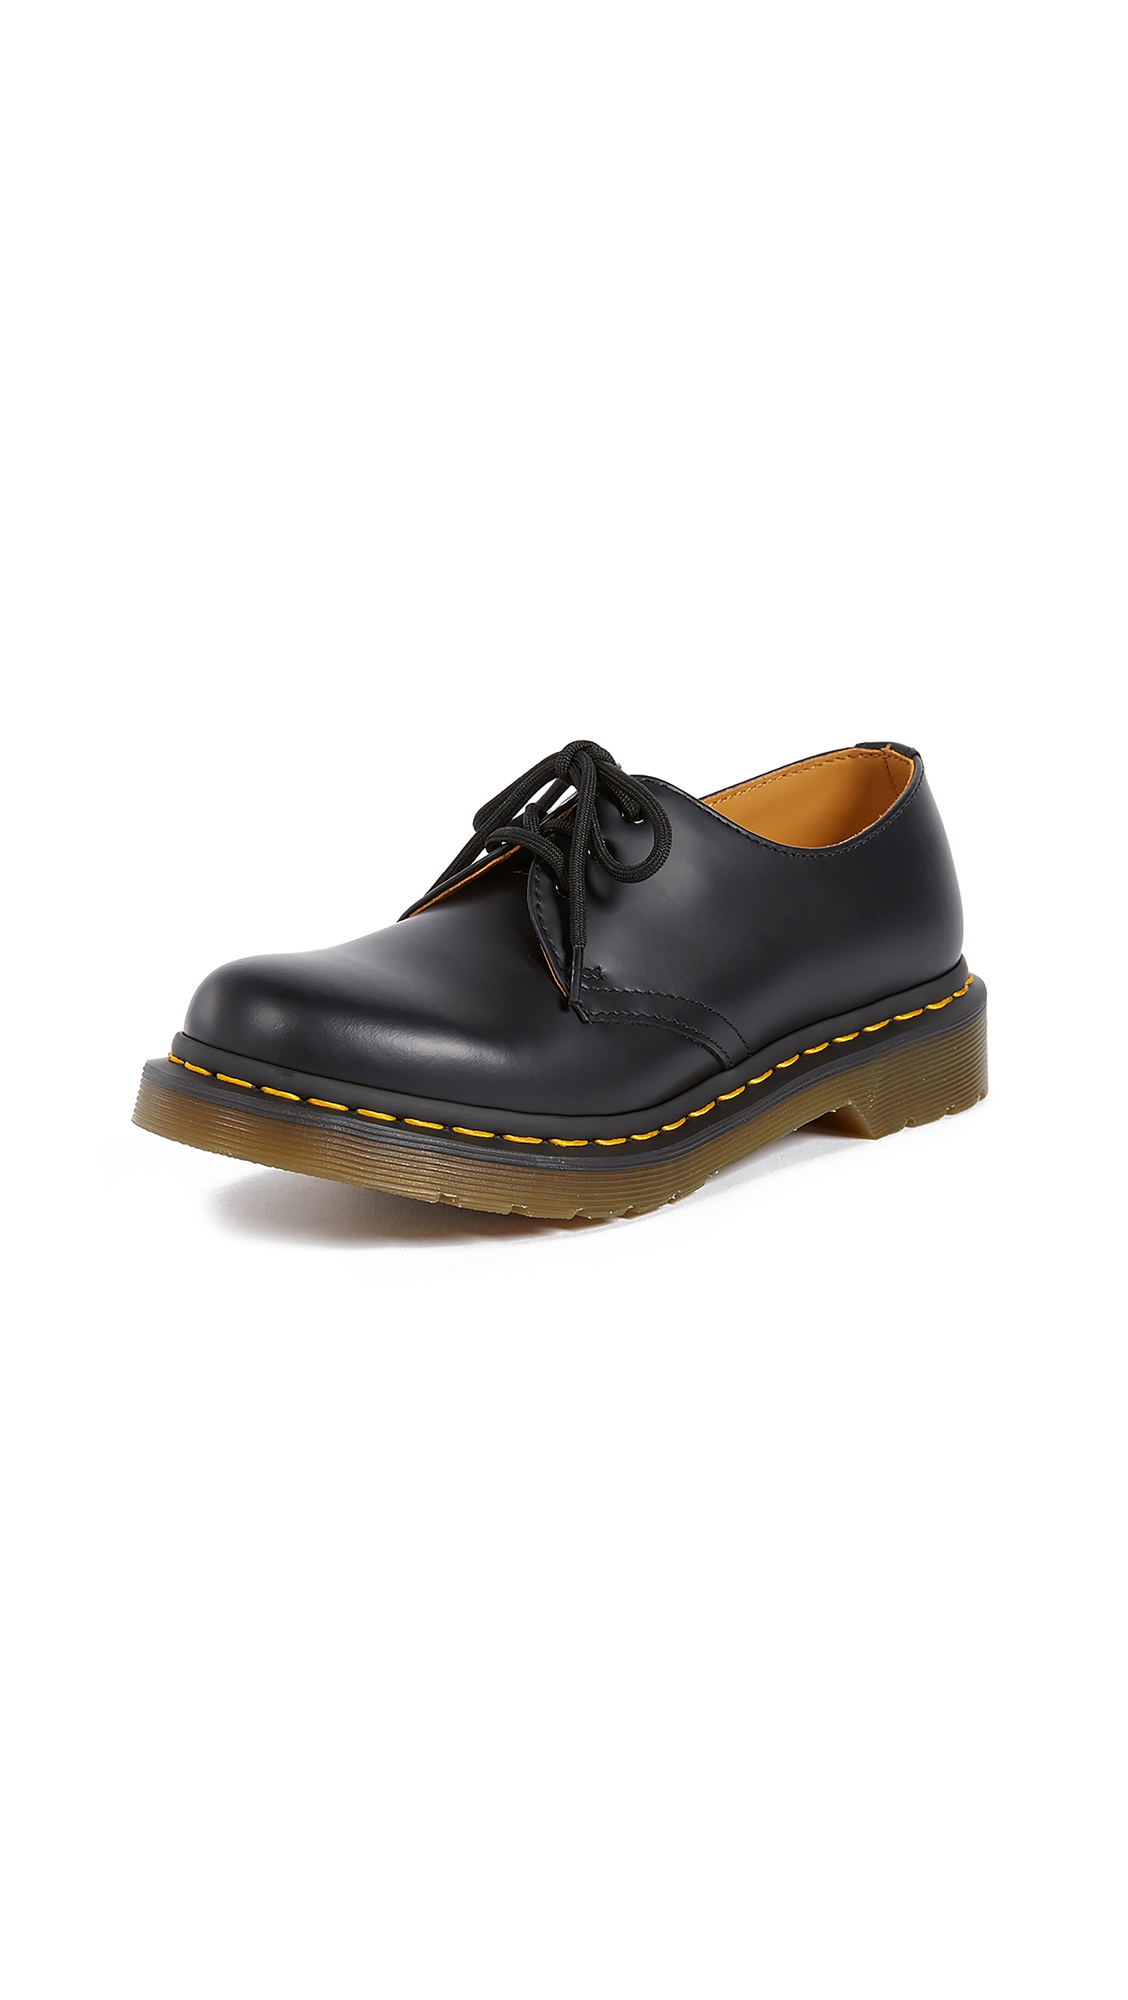 Dr. Martens 1461 3 Eye Oxfords - Black